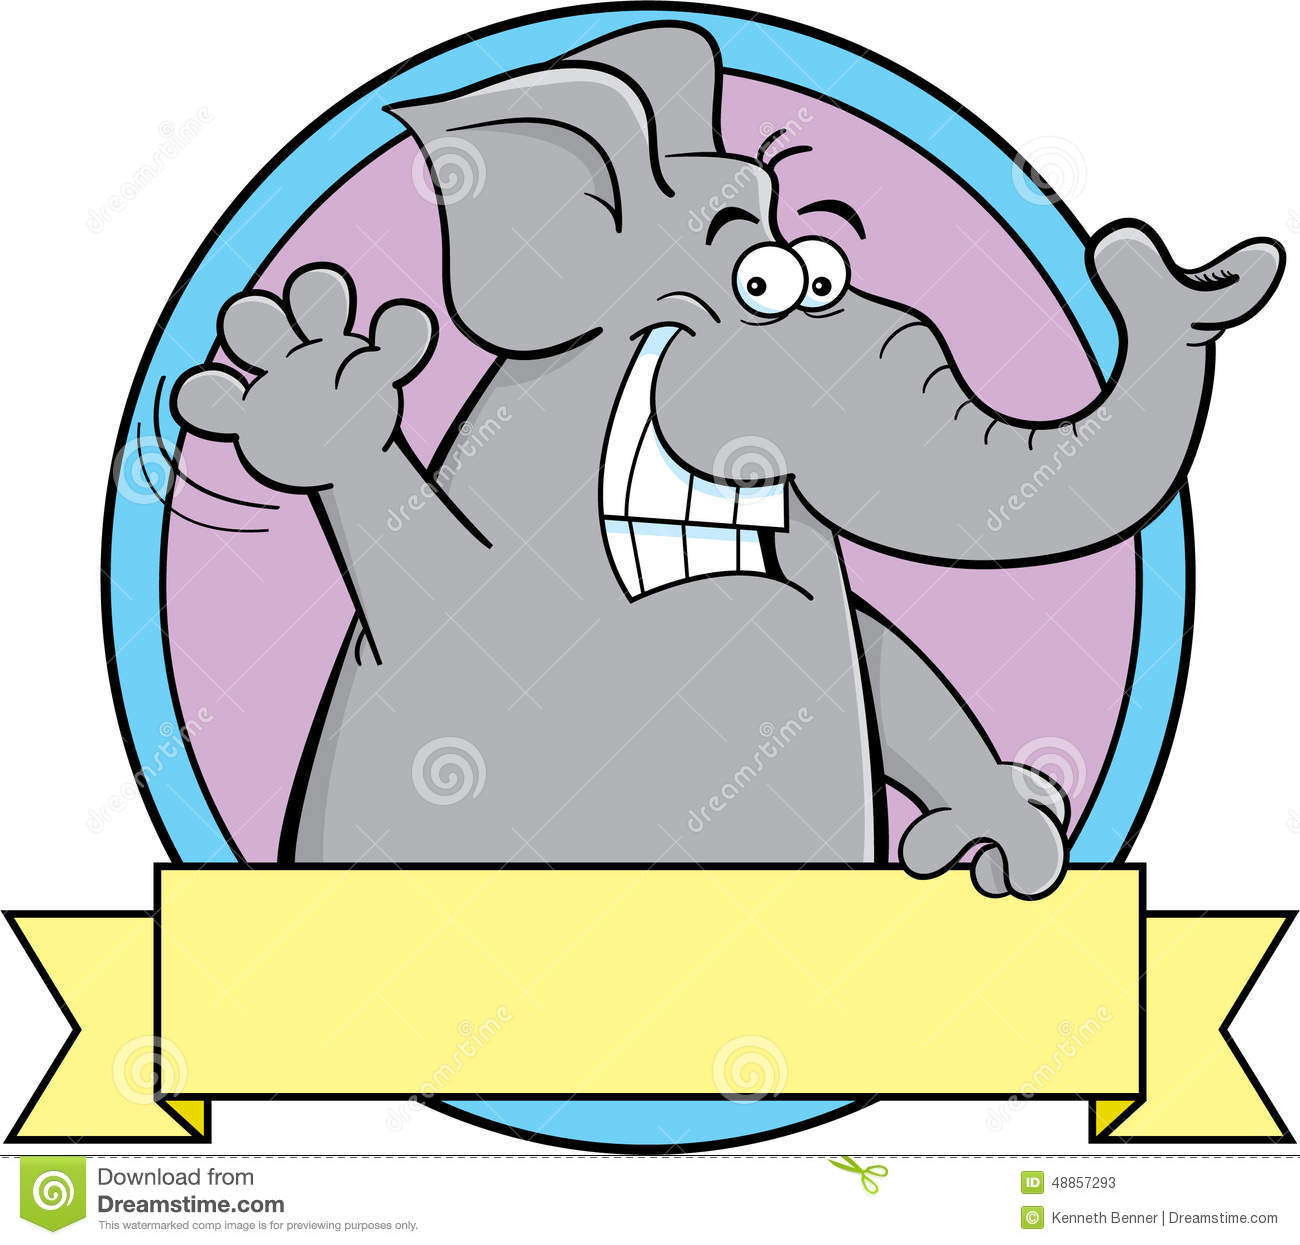 microsoft clip art elephant - photo #12